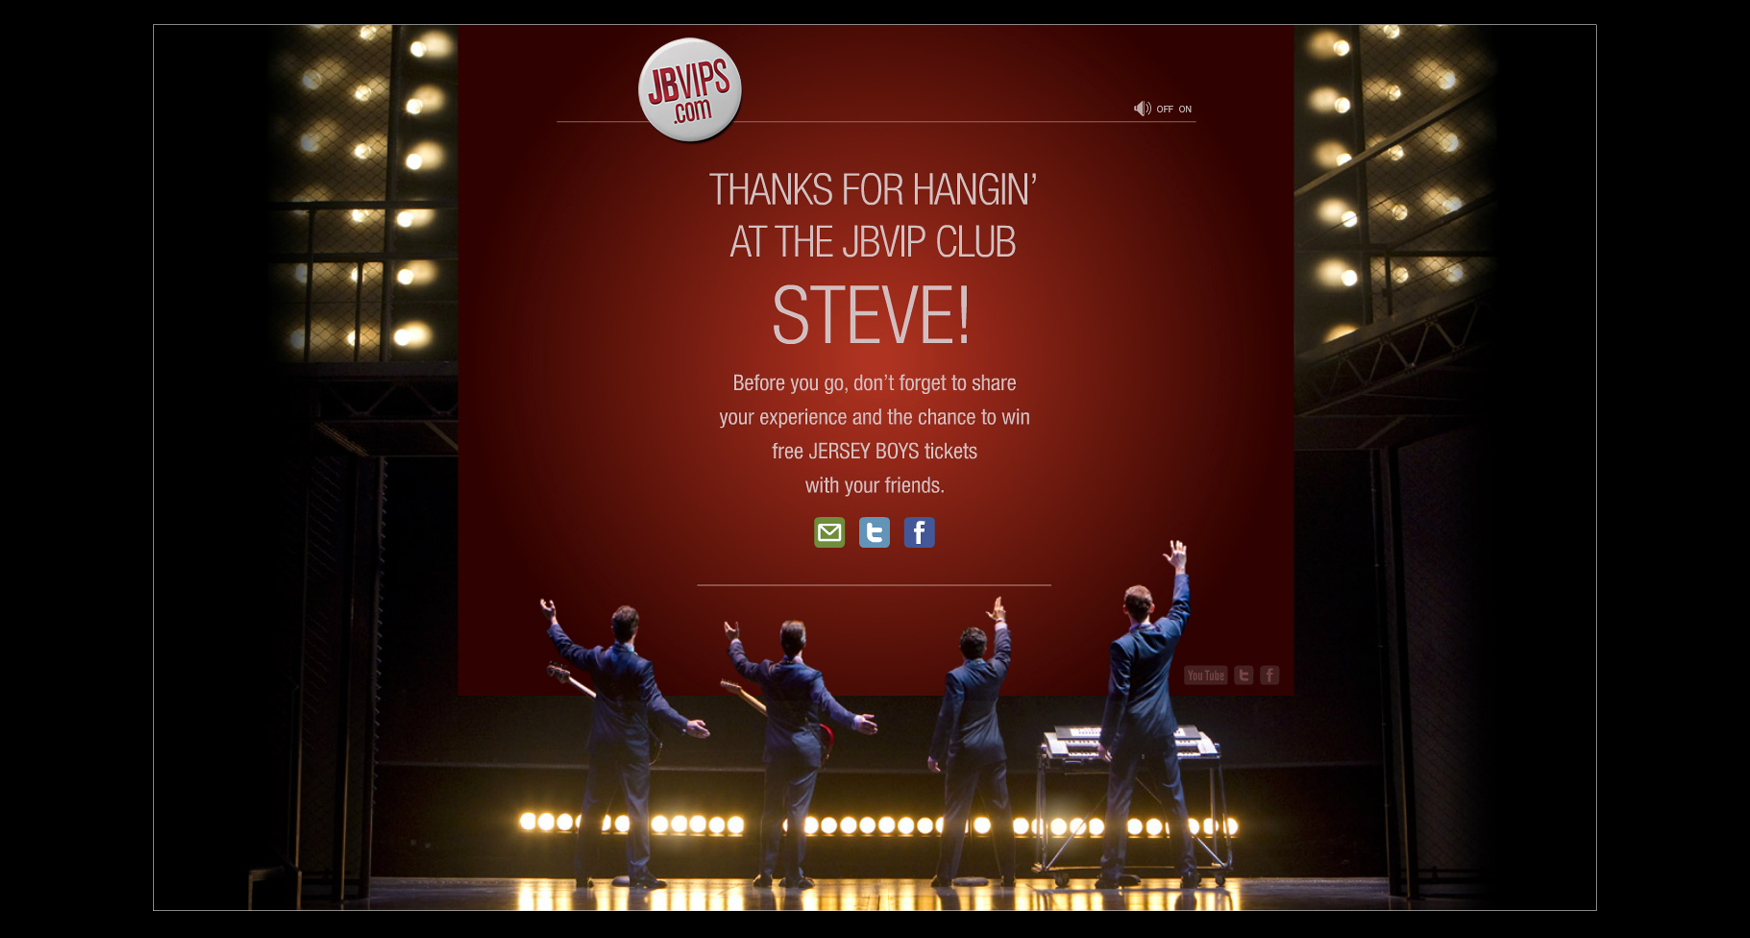 BP Large Images46 - JERSEY BOYS - THANK YOU PAGE